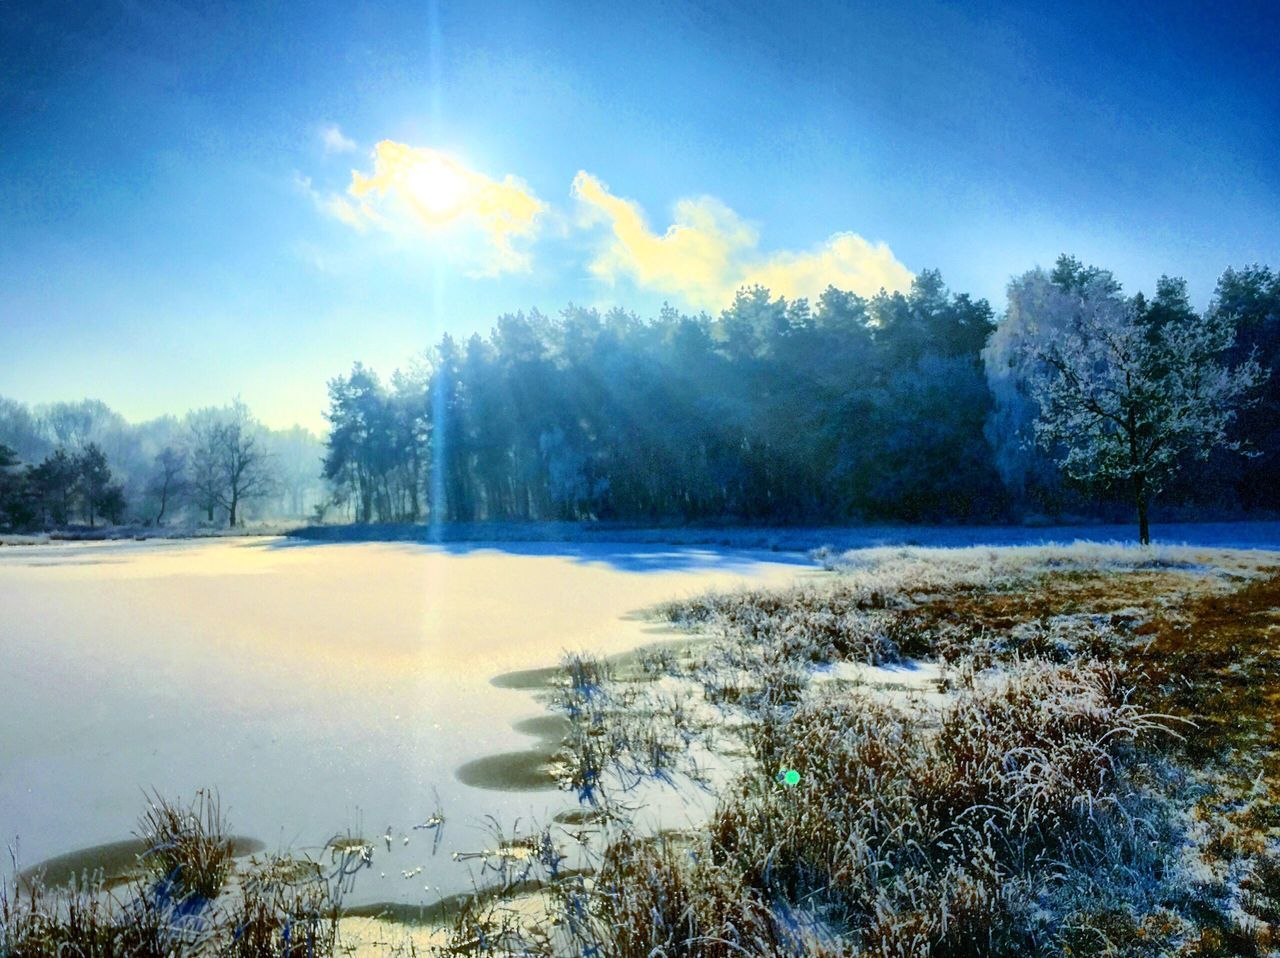 Winter scape Winter Cold Temperature Nature Beauty In Nature Snow Sky Tranquility Tranquil Scene Landscape Tree Outdoors No People Scenics Day Lake Hot Spring